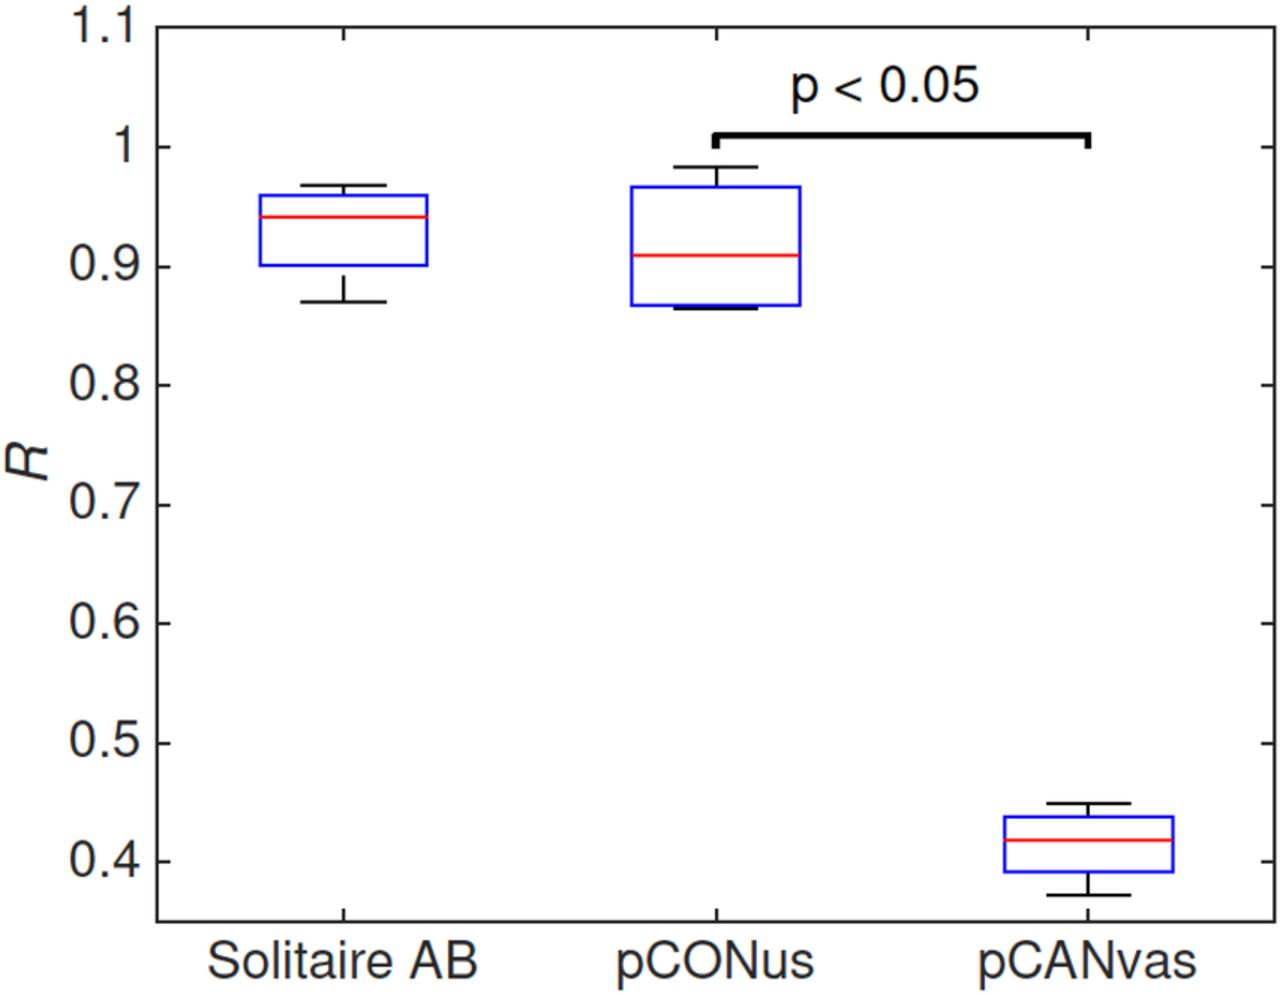 Intra Aneurysmal Hemodynamics Evaluation Of Pconus And Pcanvas Run Coil Circuit Has Been Marked With Current Flow Direction Download Figure